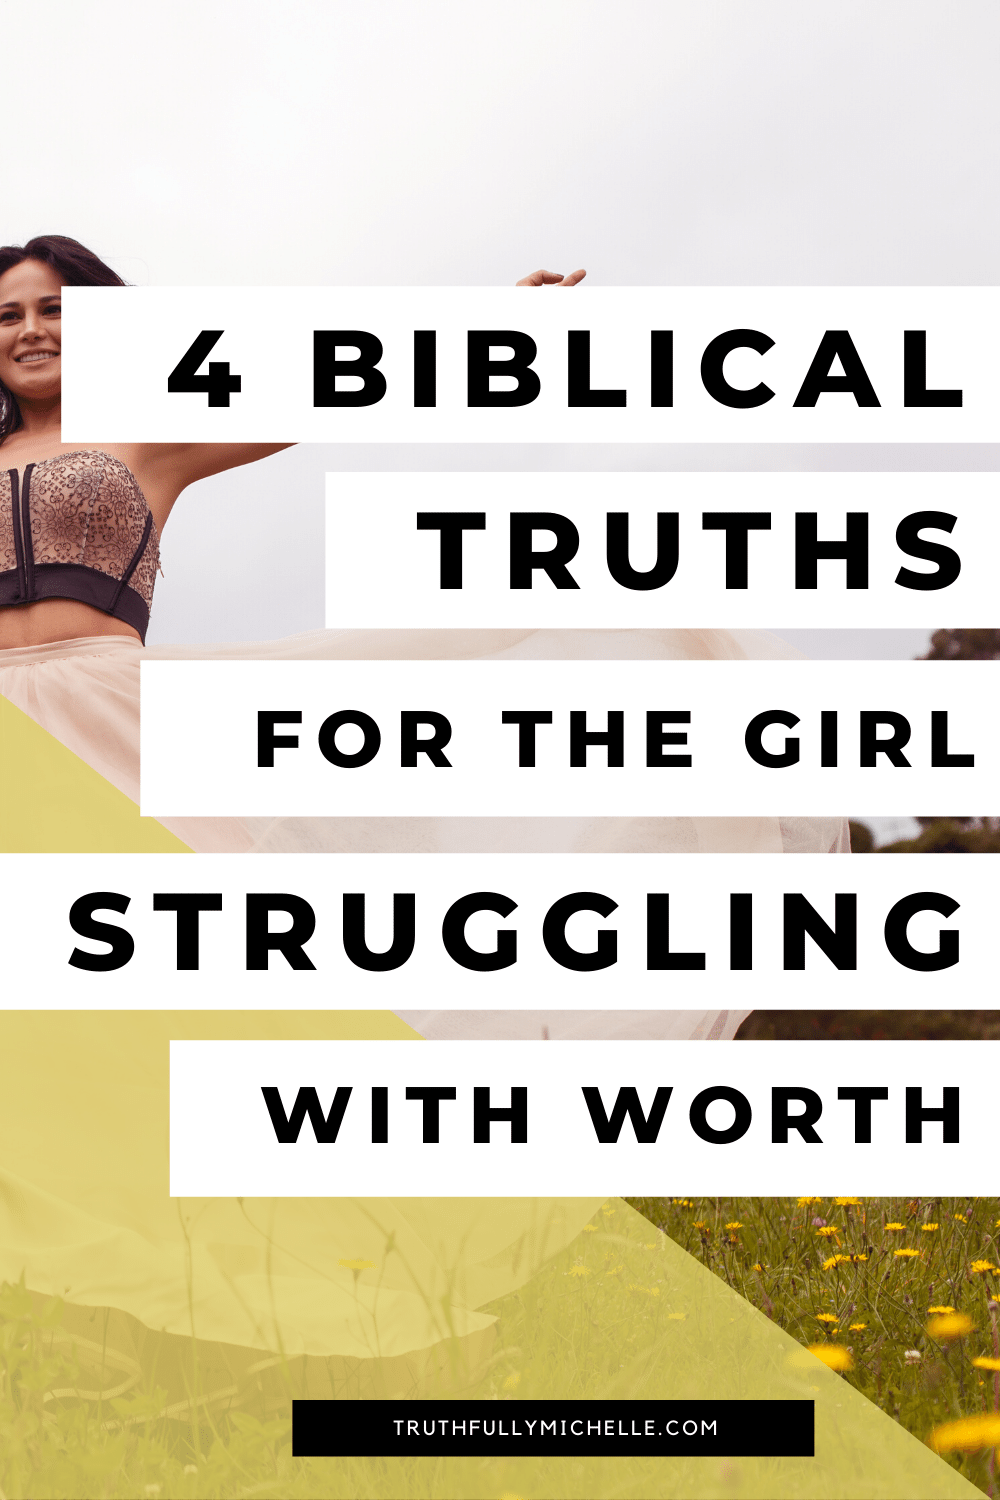 Biblical truths for women, Biblical truths for girls, Speaking Biblical truths, Why I am not enough, I know I am not enough, When I am not enough, When I feel like I am not enough, I am not enough but God is, Christ is enough for me, Christ is enough Jesus, Jesus is enough for me , God is enough for me, Only God is enough, My God is enough, Until God is enough, When God is enough, God is enough for us, Find your worth in Christ, Knowing your worth in Christ, Self worth in Christ, Finding my worth in Christ, Finding worth in Jesus, Find your worth in Jesus, My God is more than enough, Is Jesus enough for you